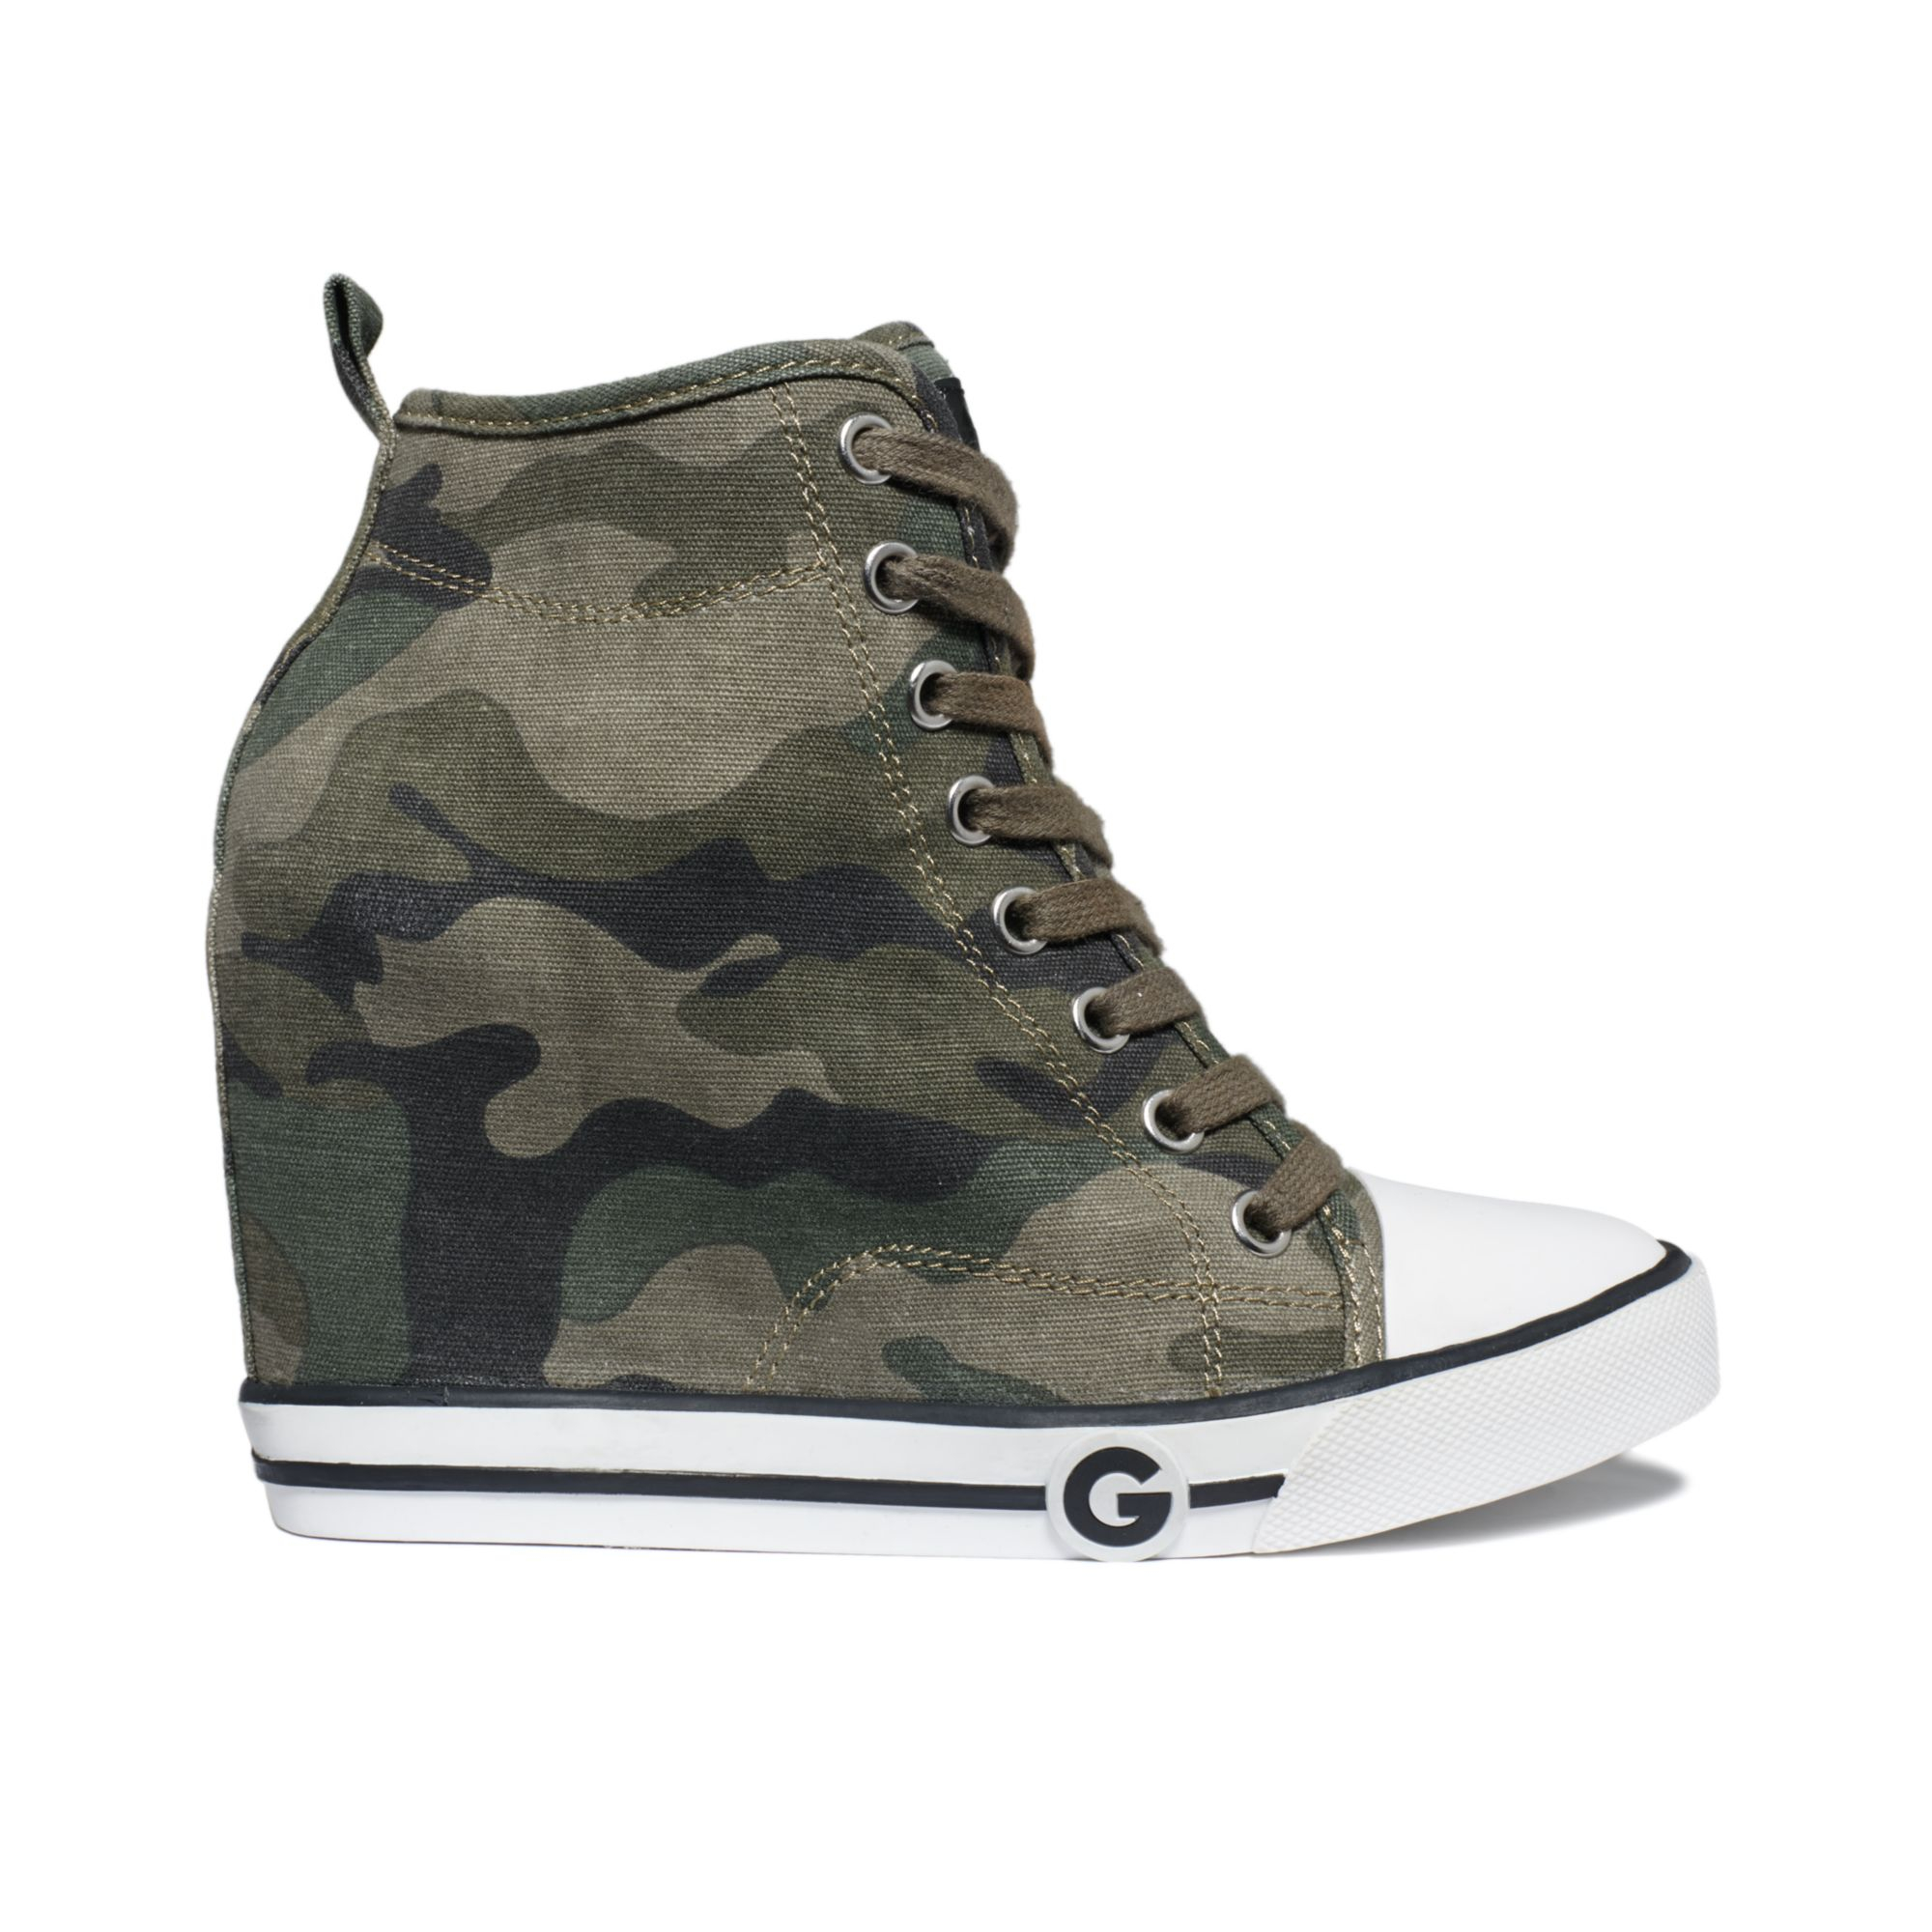 9311040241419 G by Guess Womens Majestey Wedge High Top Sneakers in Green - Lyst